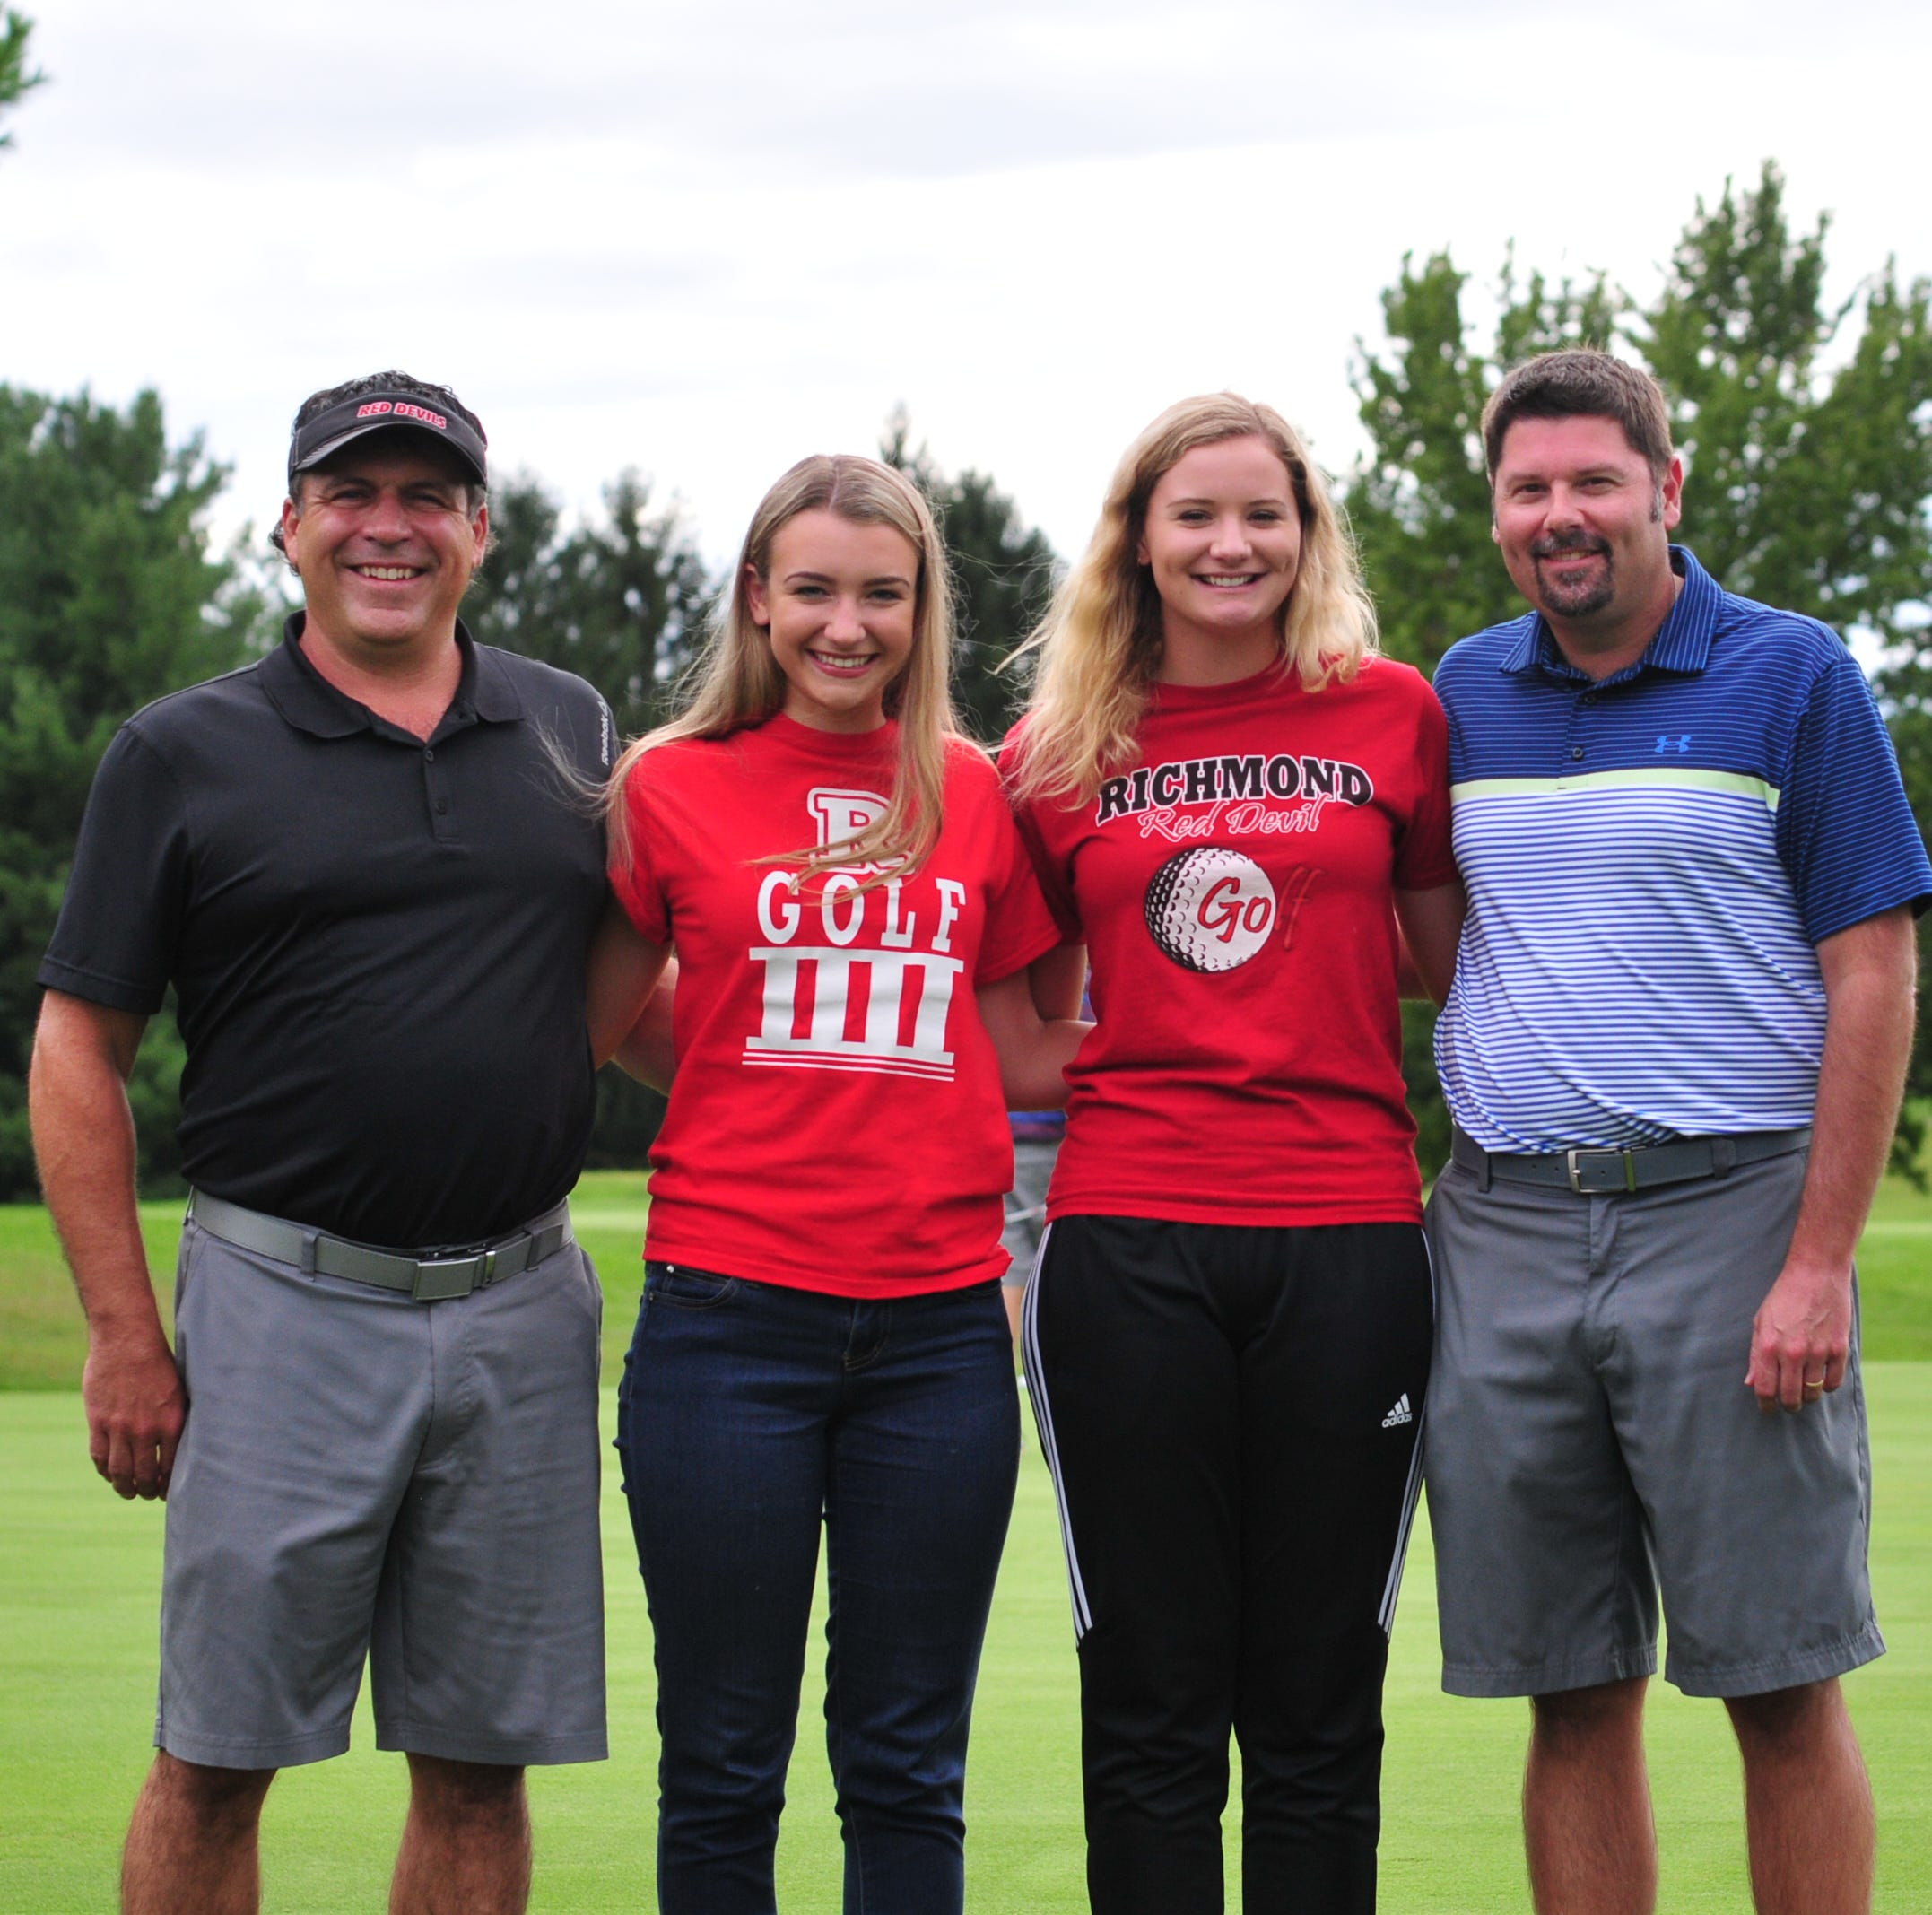 Fathers' lessons lead undefeated Richmond golf team